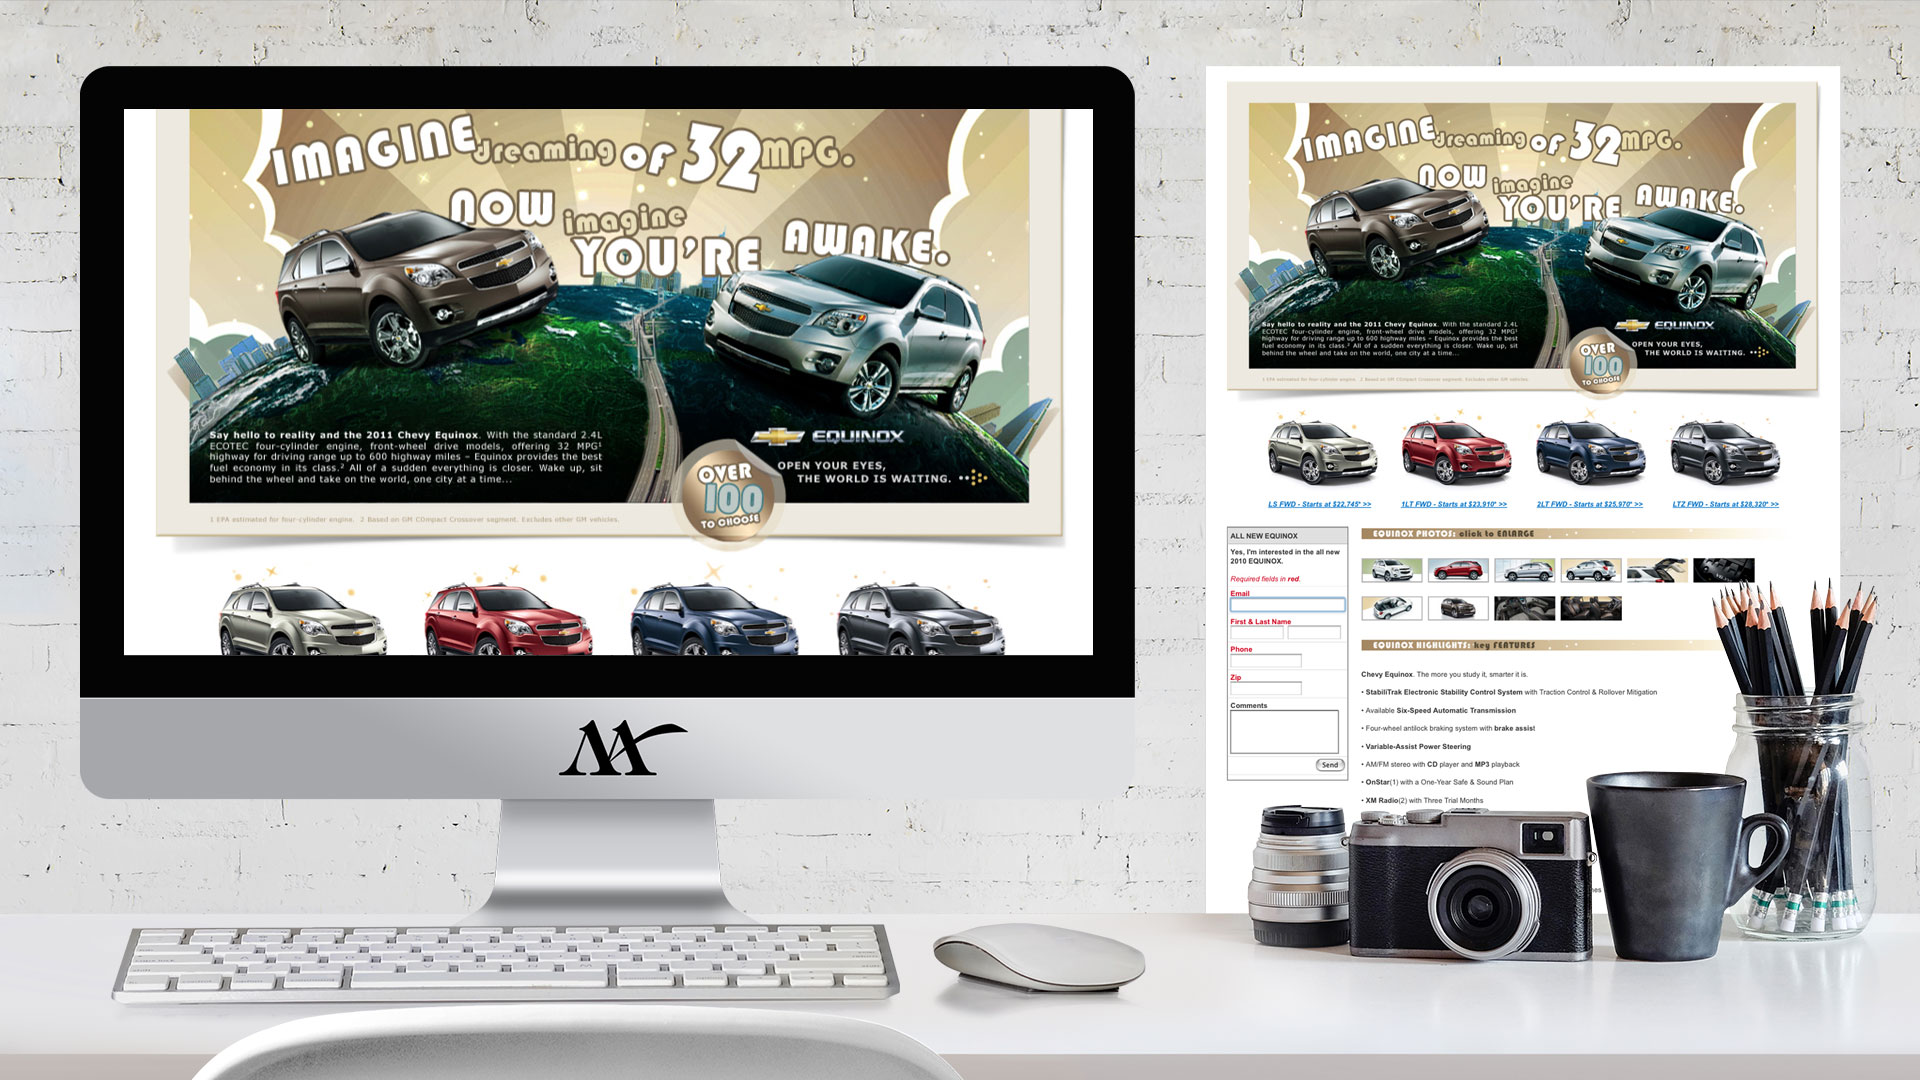 Website: Chevy Equinox Microsite